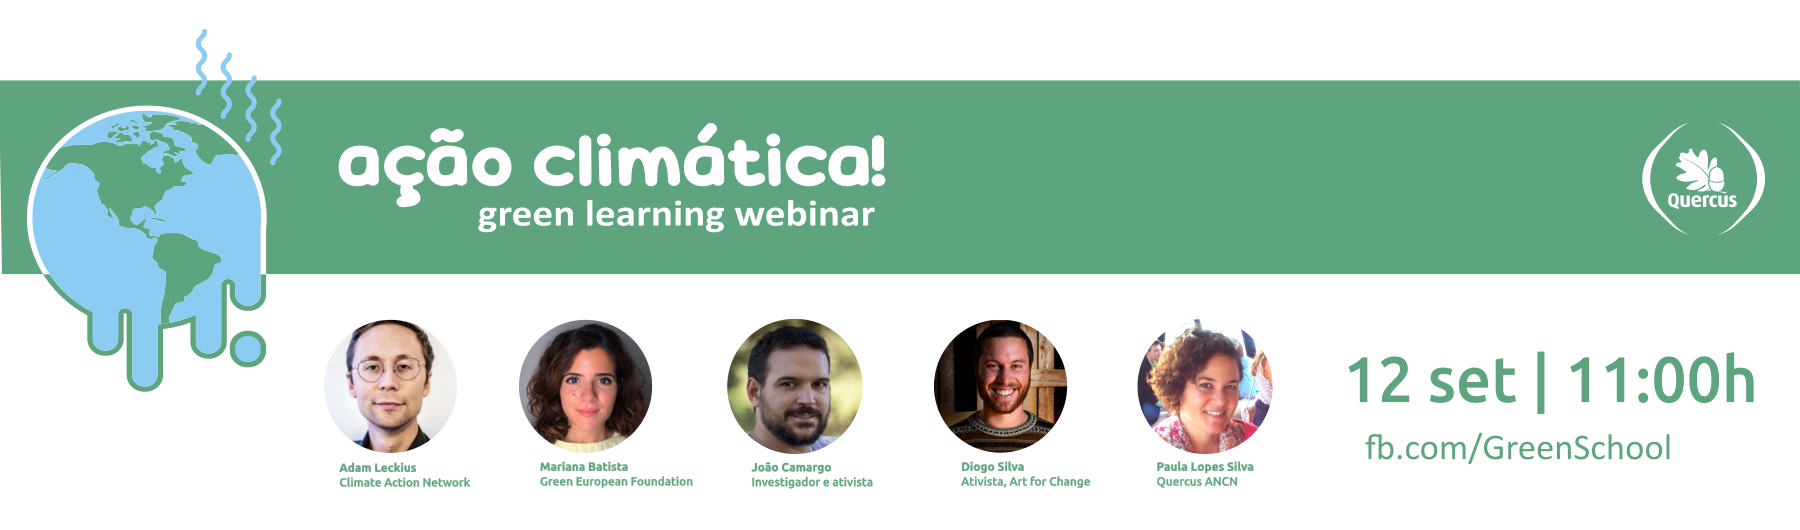 Ação Climática - Green Learning Webinar